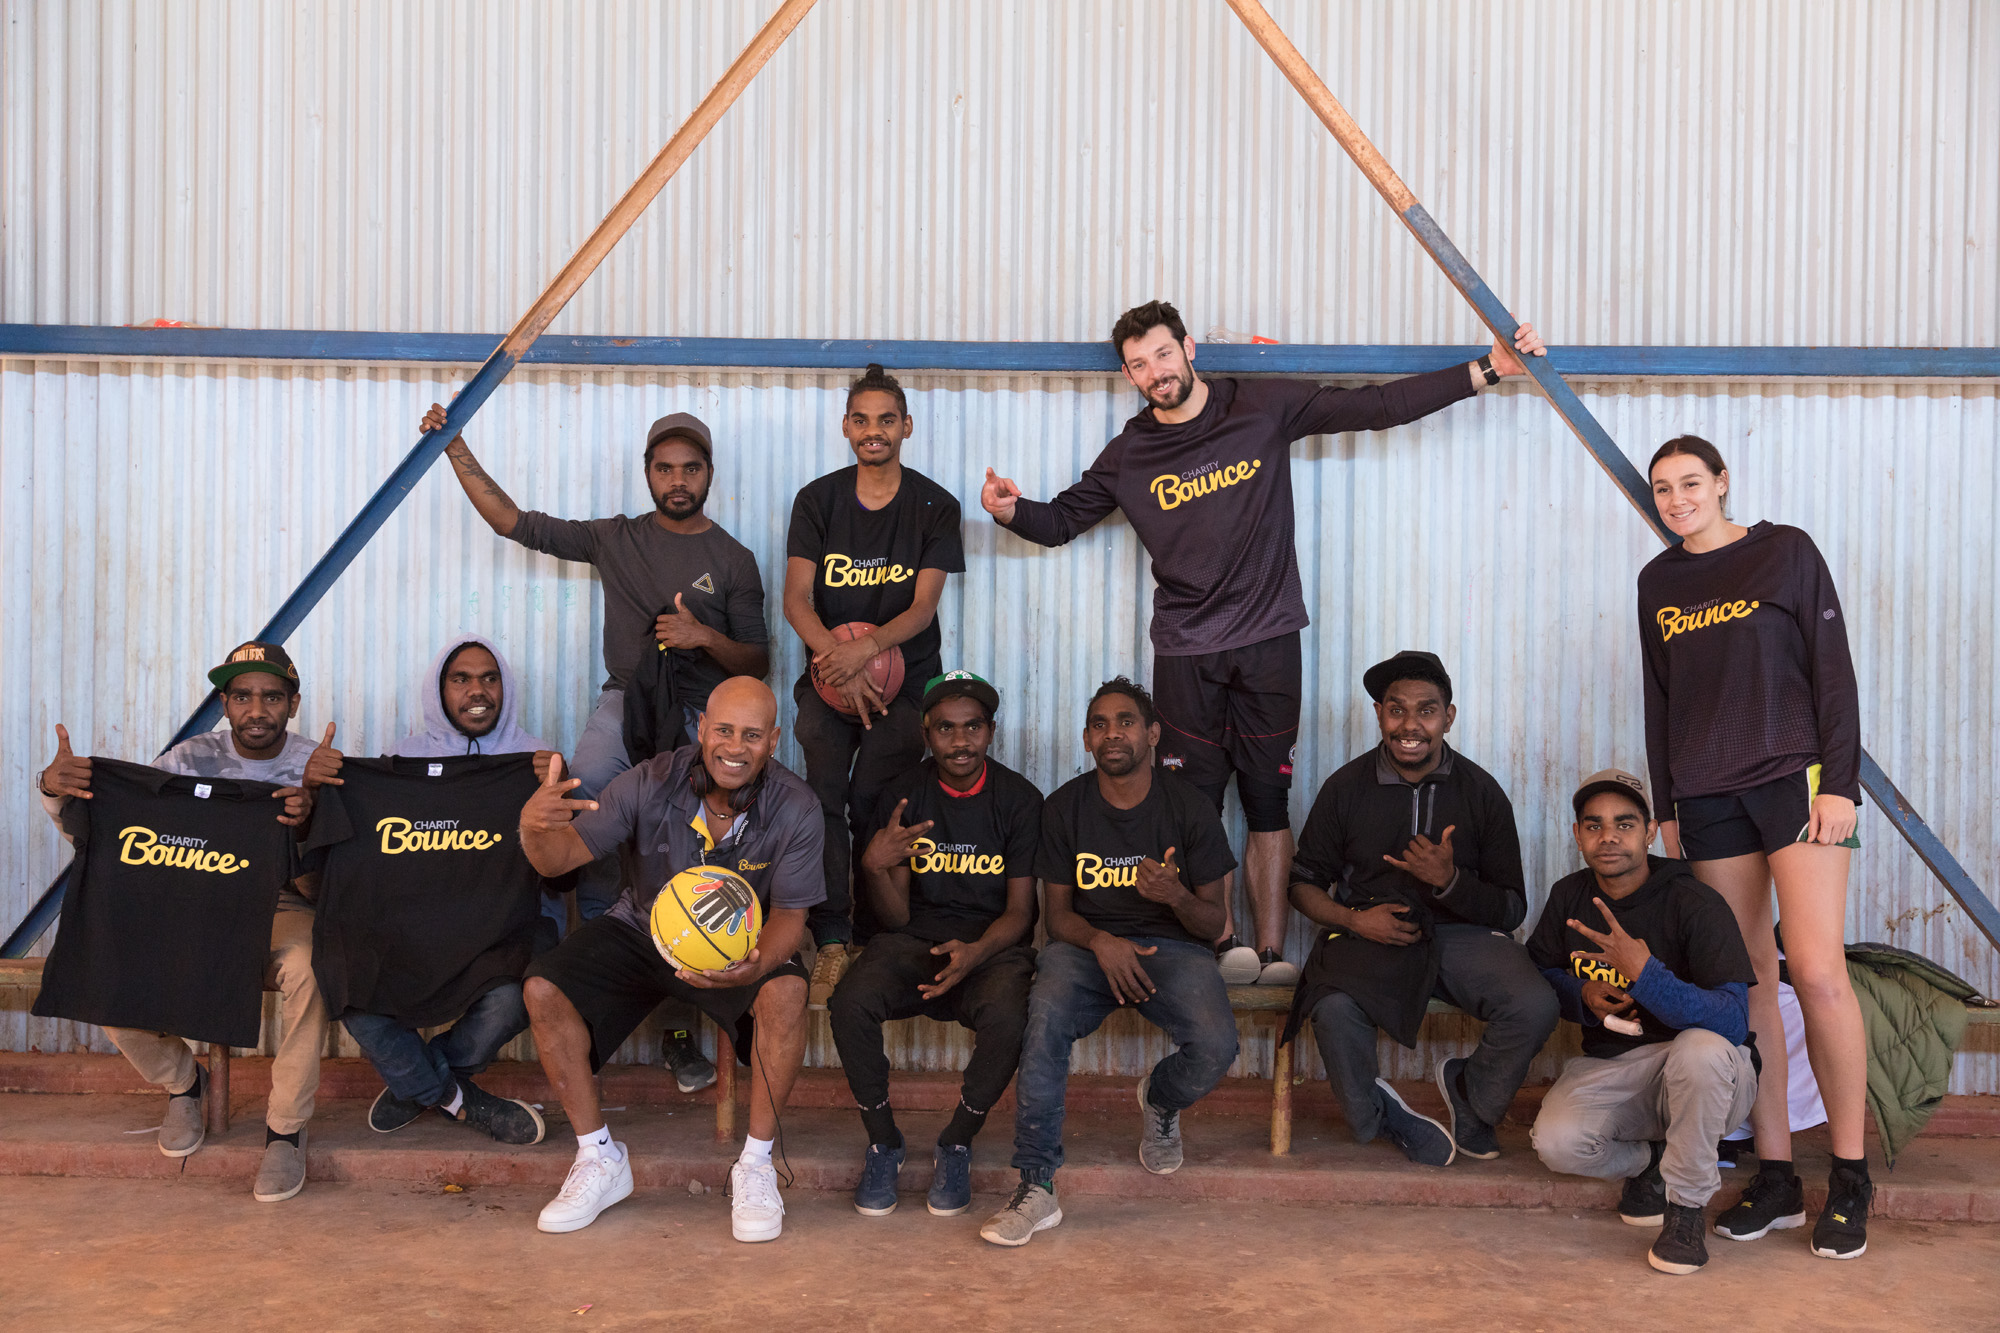 AUSTRALIAN BASKETBALLERS ASSOCIATION AND CHARITY BOUNCE PARTNER TO INSPIRE POSITIVE CHANGE.